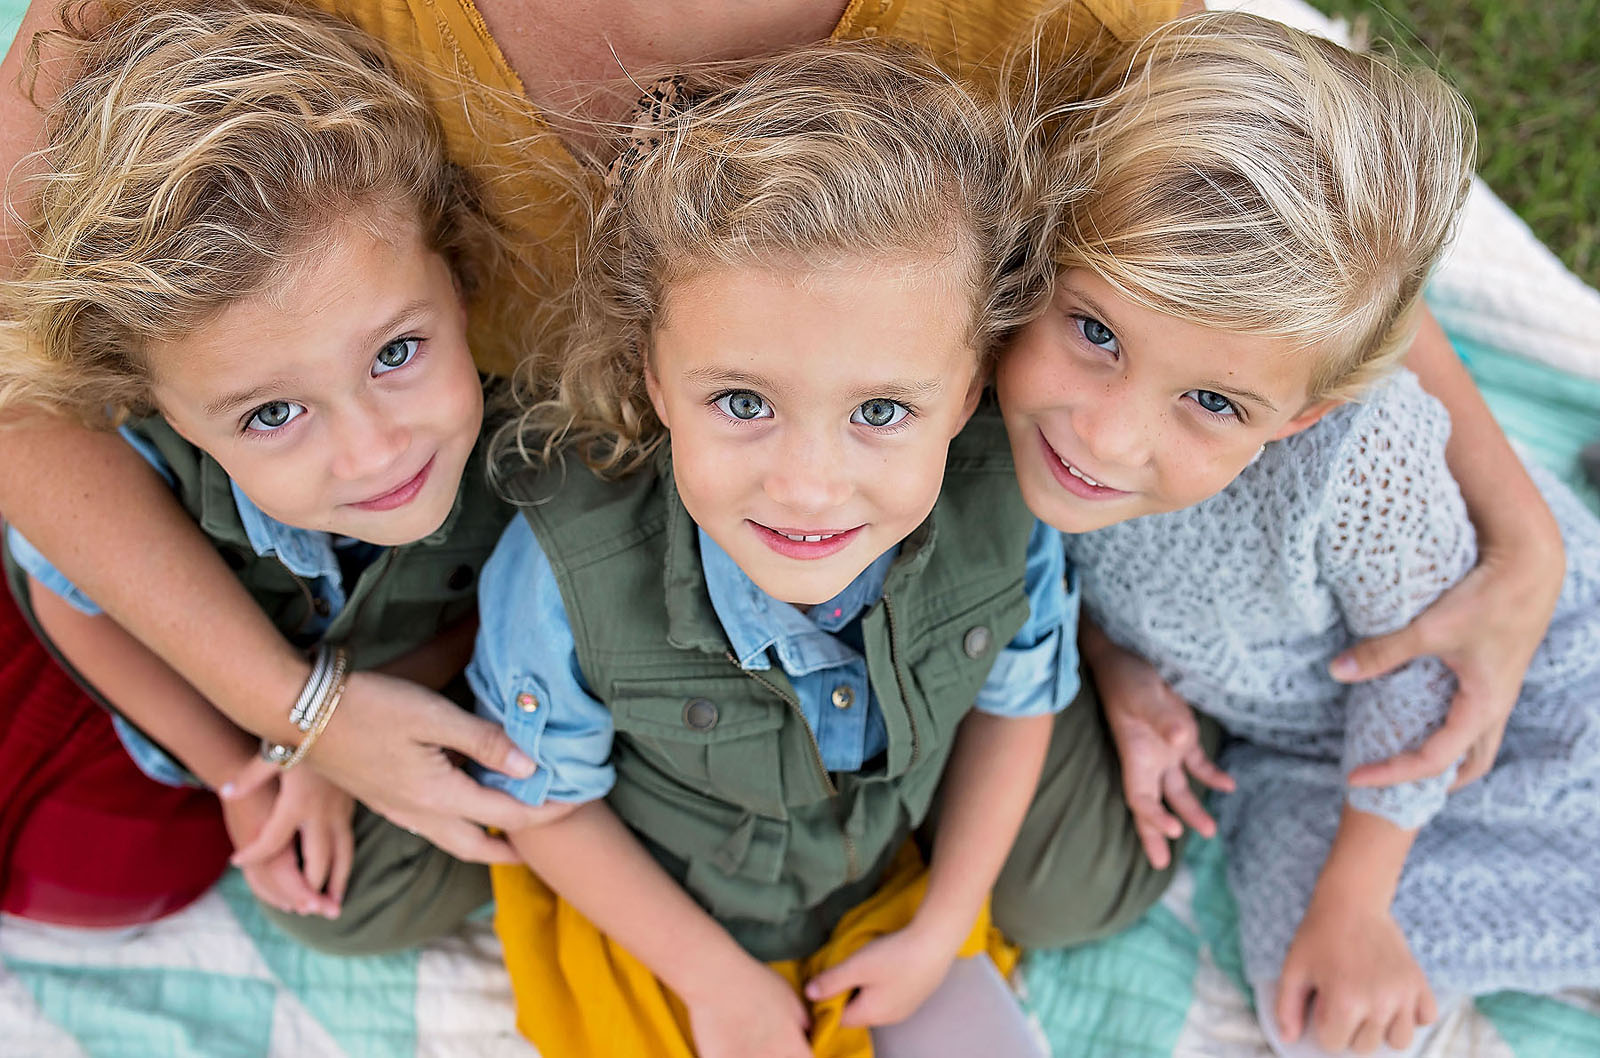 picture of 3 little girls looking up and smiling by Allison Gipson